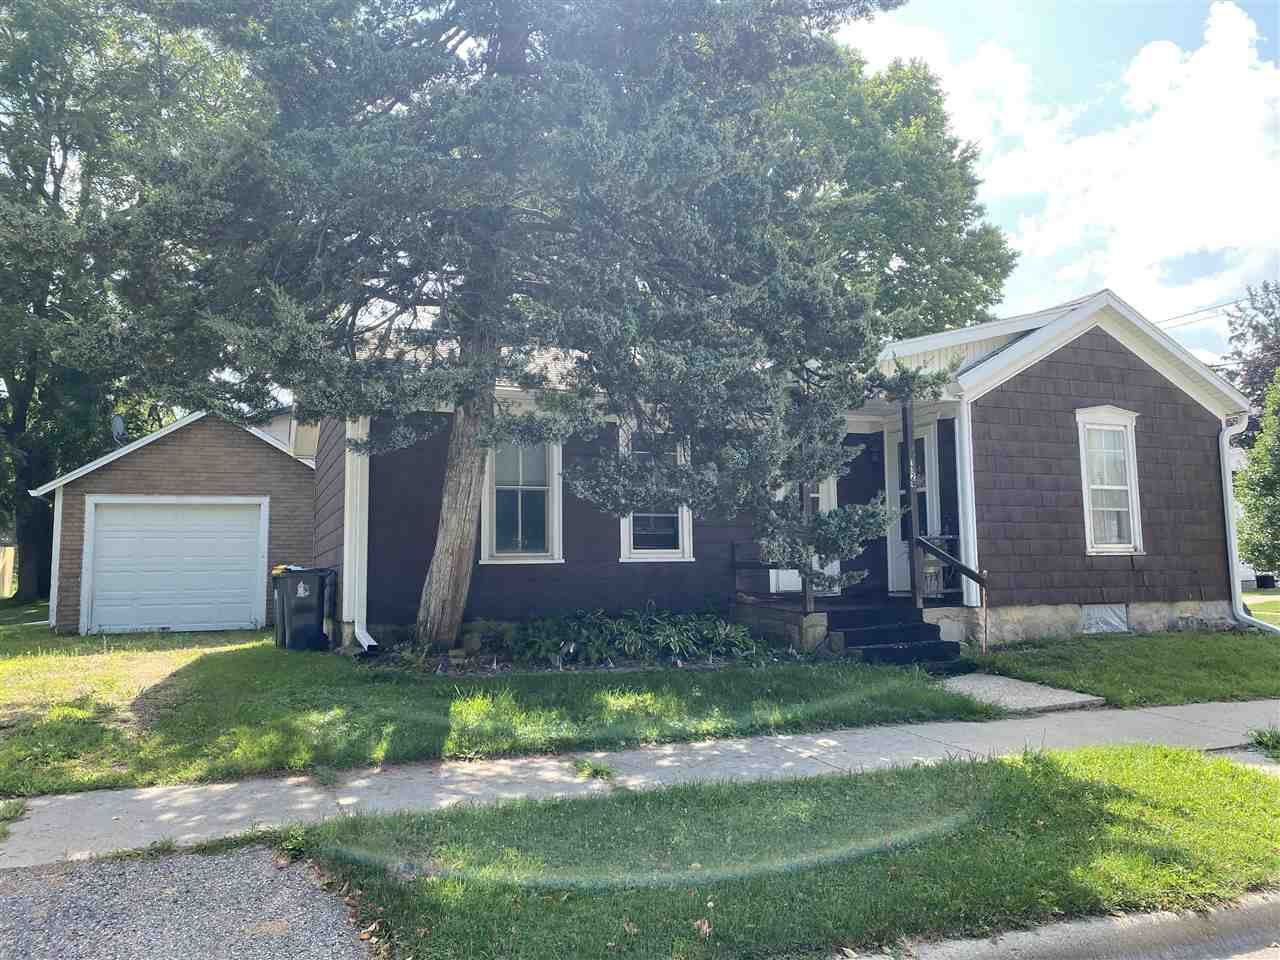 1124-1122 23rd Ave, Monroe, WI 53566 - #: 1916418